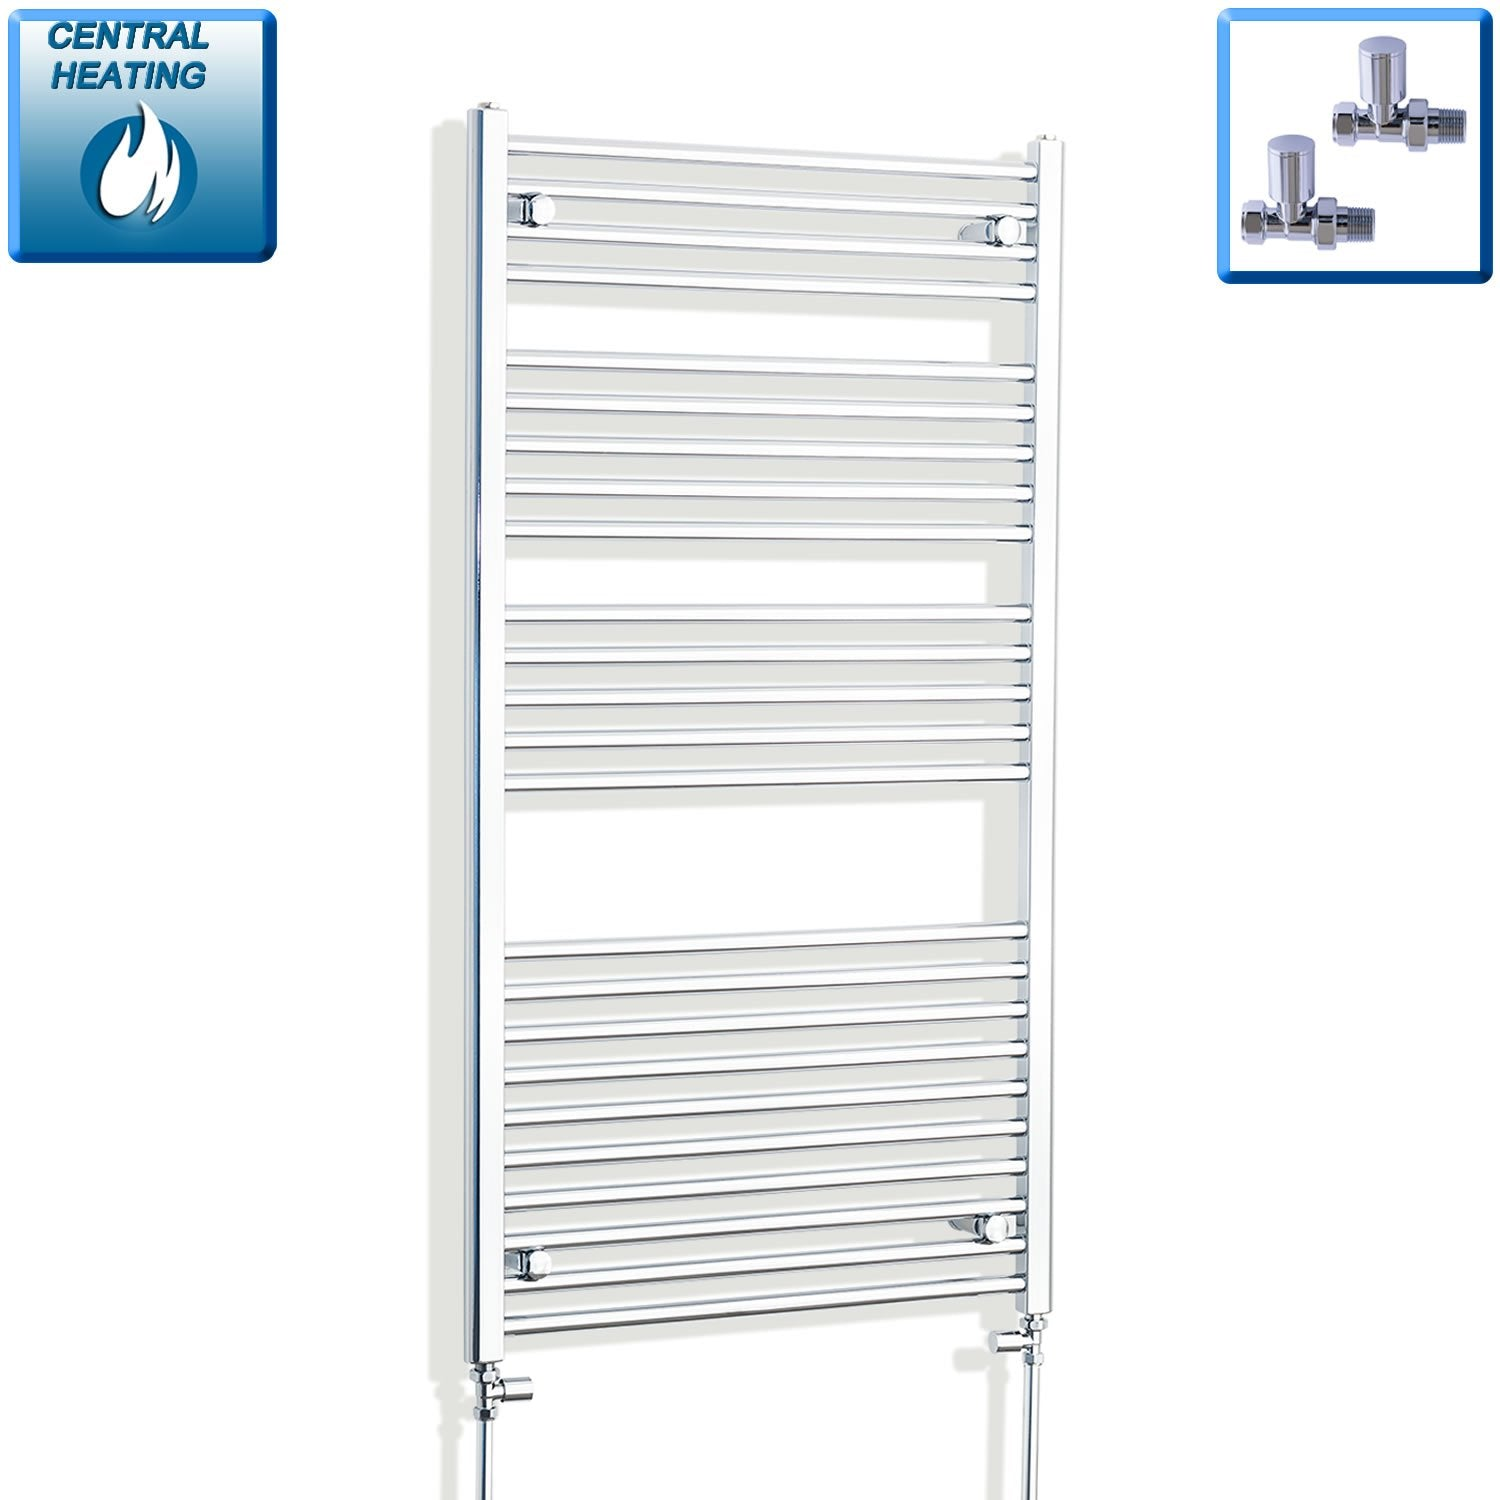 700mm Wide 1300mm High Curved Chrome Heated Towel Rail Radiator HTR,With Straight Valve